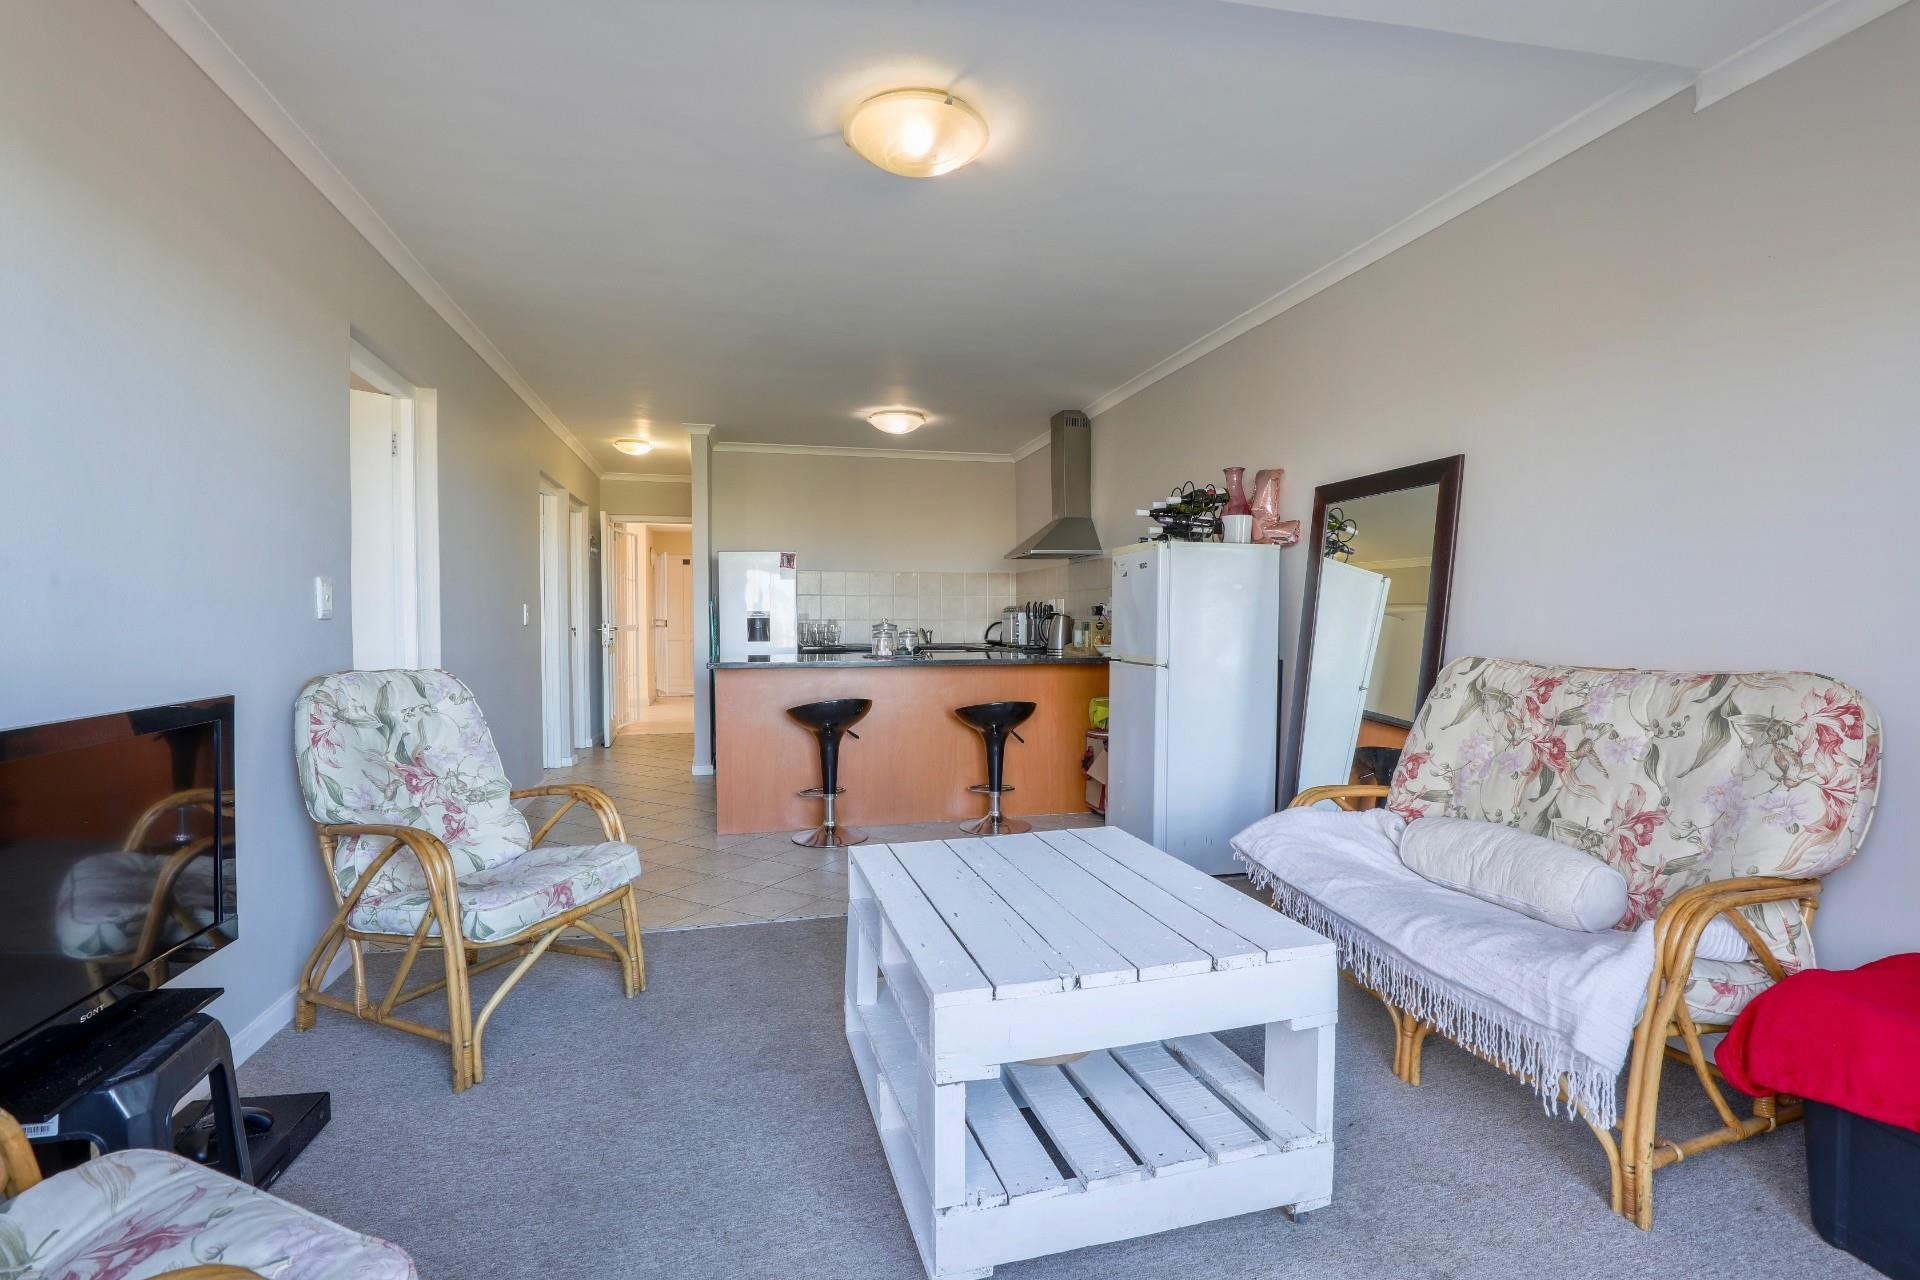 3 Bedroom Apartment for Sale in Somerset West